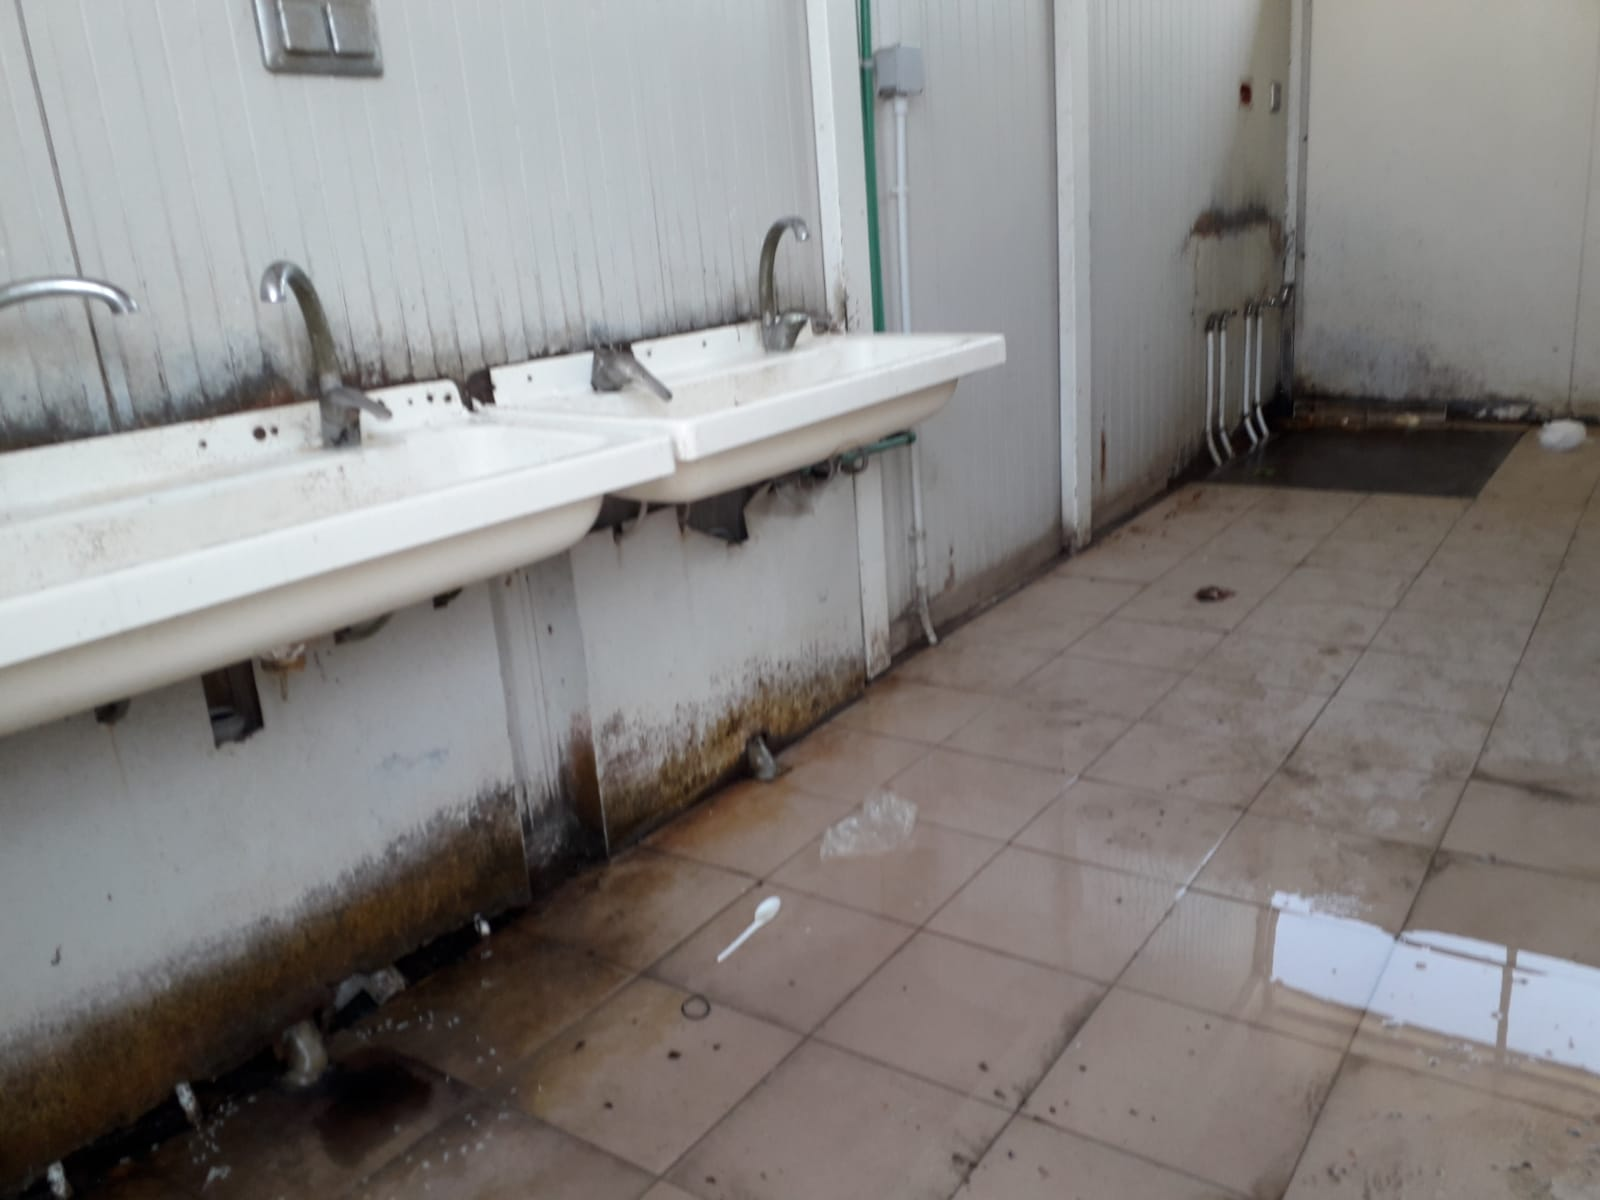 An unclean camp bathroom, near Foggia, Italy. July, 2018. © Pamela Kerpius